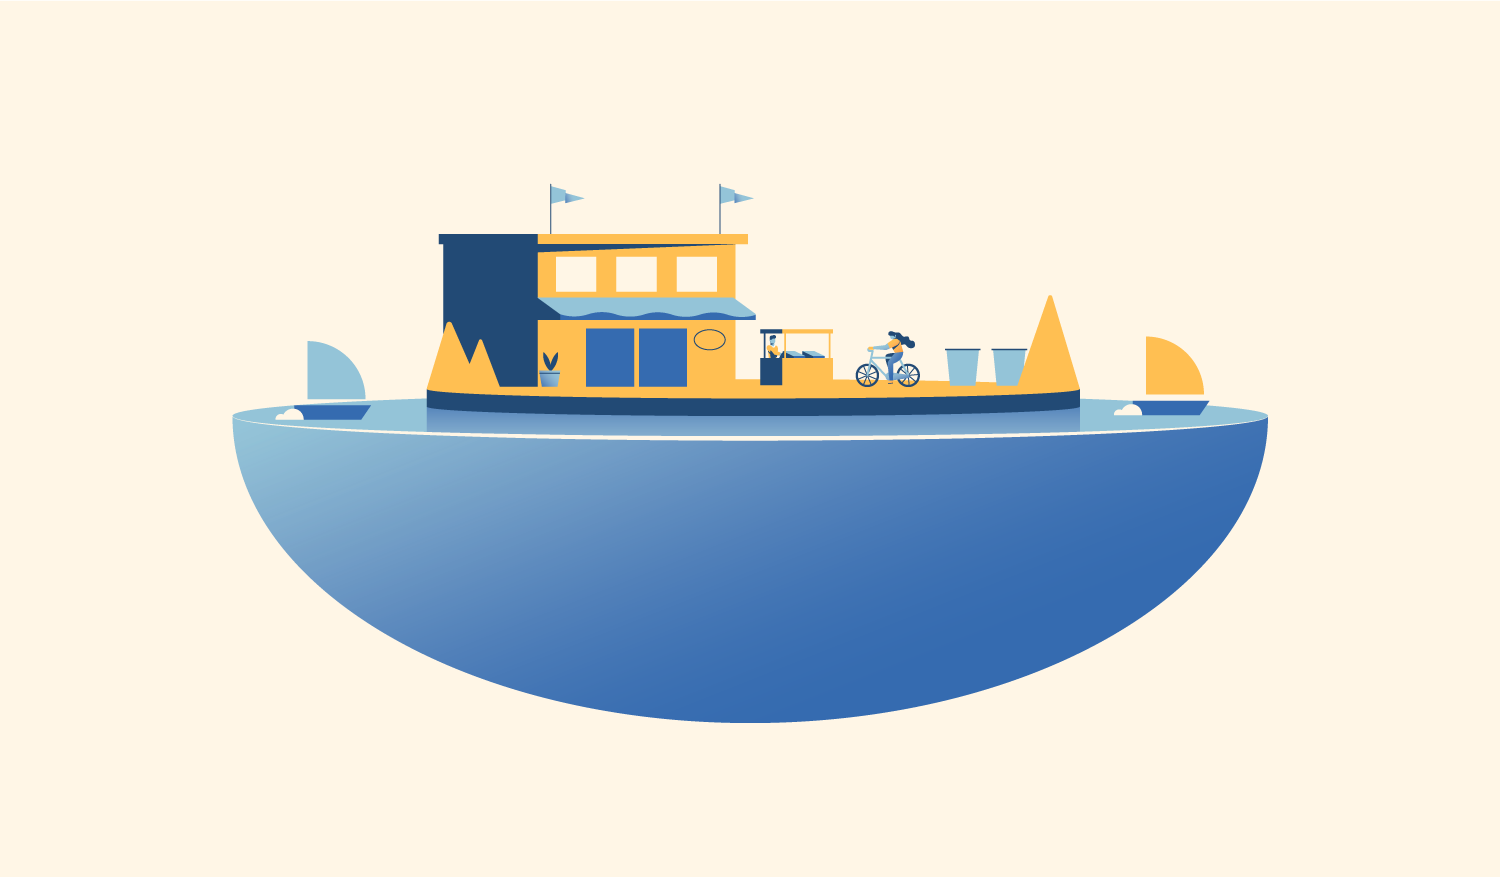 A floating city platform that contains a community sharing hub.